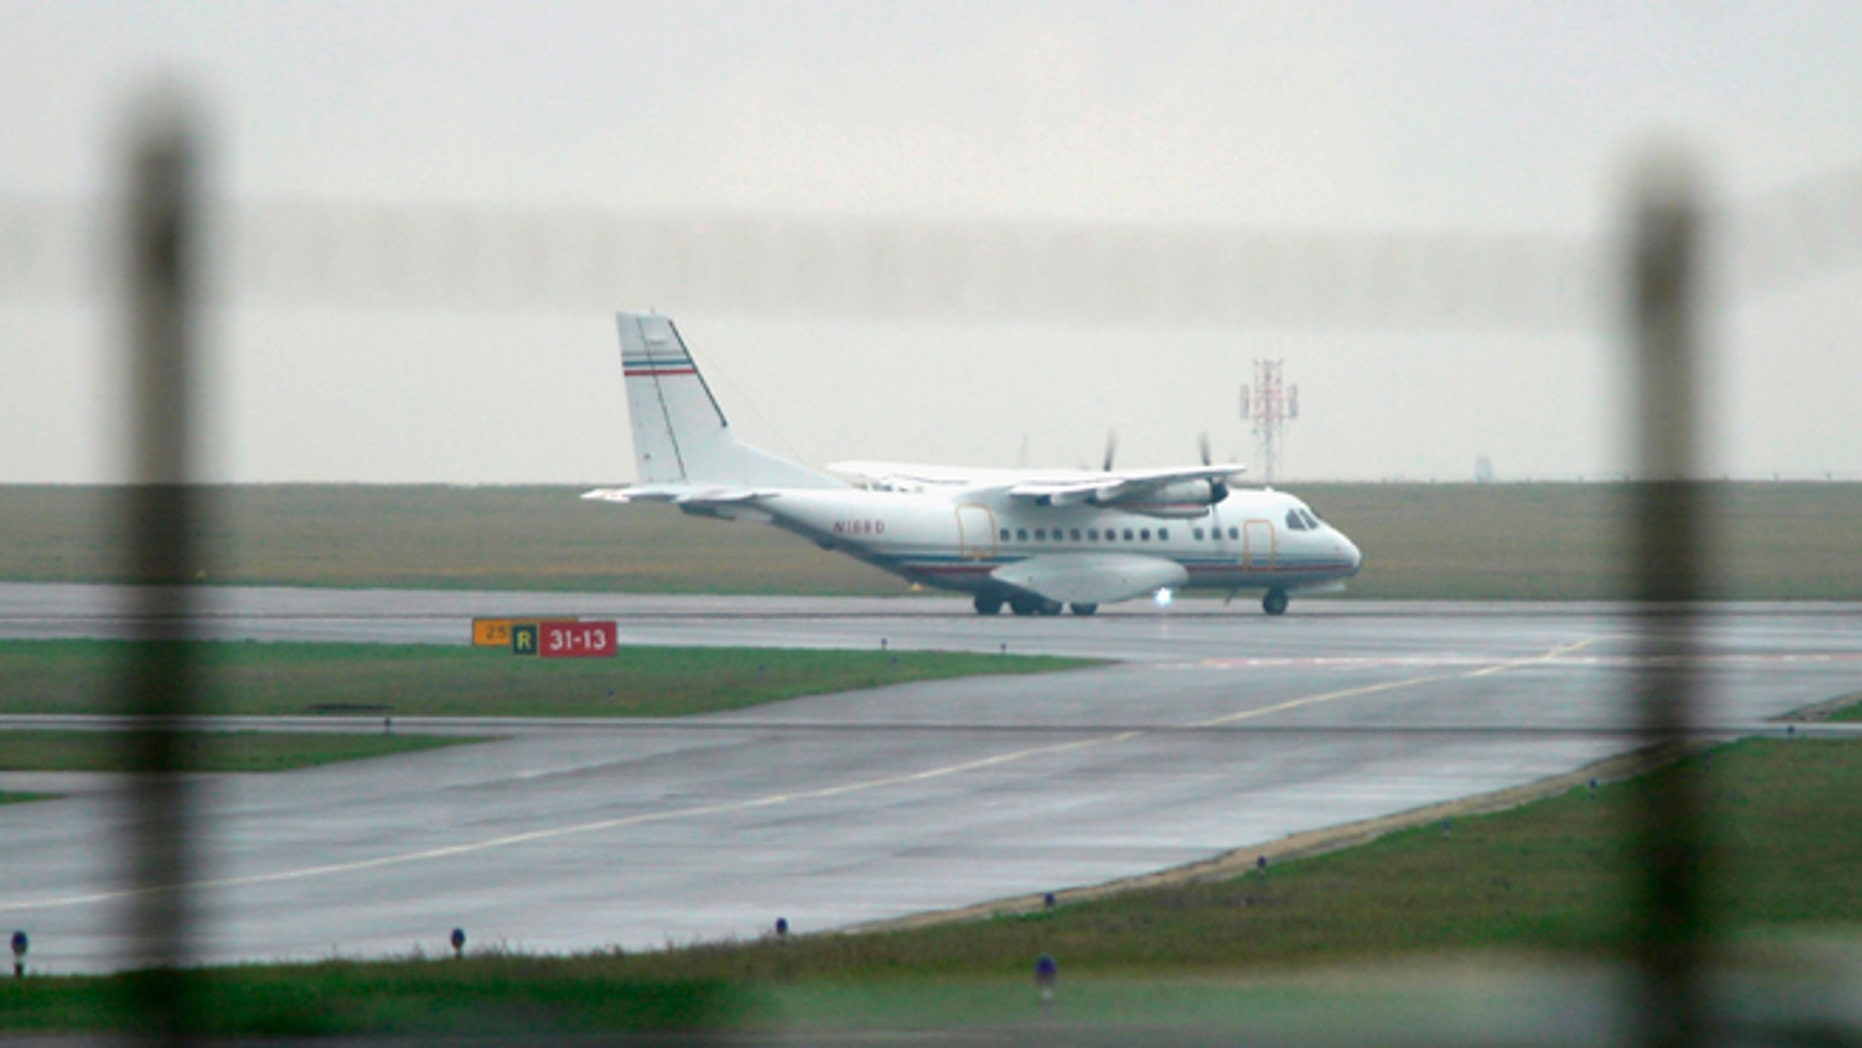 PRAGUE, CZECH REPUBLIC - APRIL 8: (FILE PHOTO) A Casa 235 turboprop plane with registration number N168D taxis along a runway at Ruzyne Airport April 8, 2005 in Prague, Czech Republic. According to airport flight records the plane was registered to the firm Aero Contractors, based in North Carolina, and was scheduled to fly from Prague to Kabul, Afghanistan. In May, 2005 the New York Times reported that Aero Contractors was involved in transporting terrorism suspects to third countries. And on November 17, 2005, Agence France Presse reported that a plane with registration number N168D and owned by Devon Holding and Leasing passed through Danish airspace on October 3, 2005 en route from Iceland to Budapest. Countries across Europe are investigating reports that airplanes flying for the CIA landed at their airports or passed through their airspace without their permission.      (Photo by Pavel Horejsi/Getty Images)